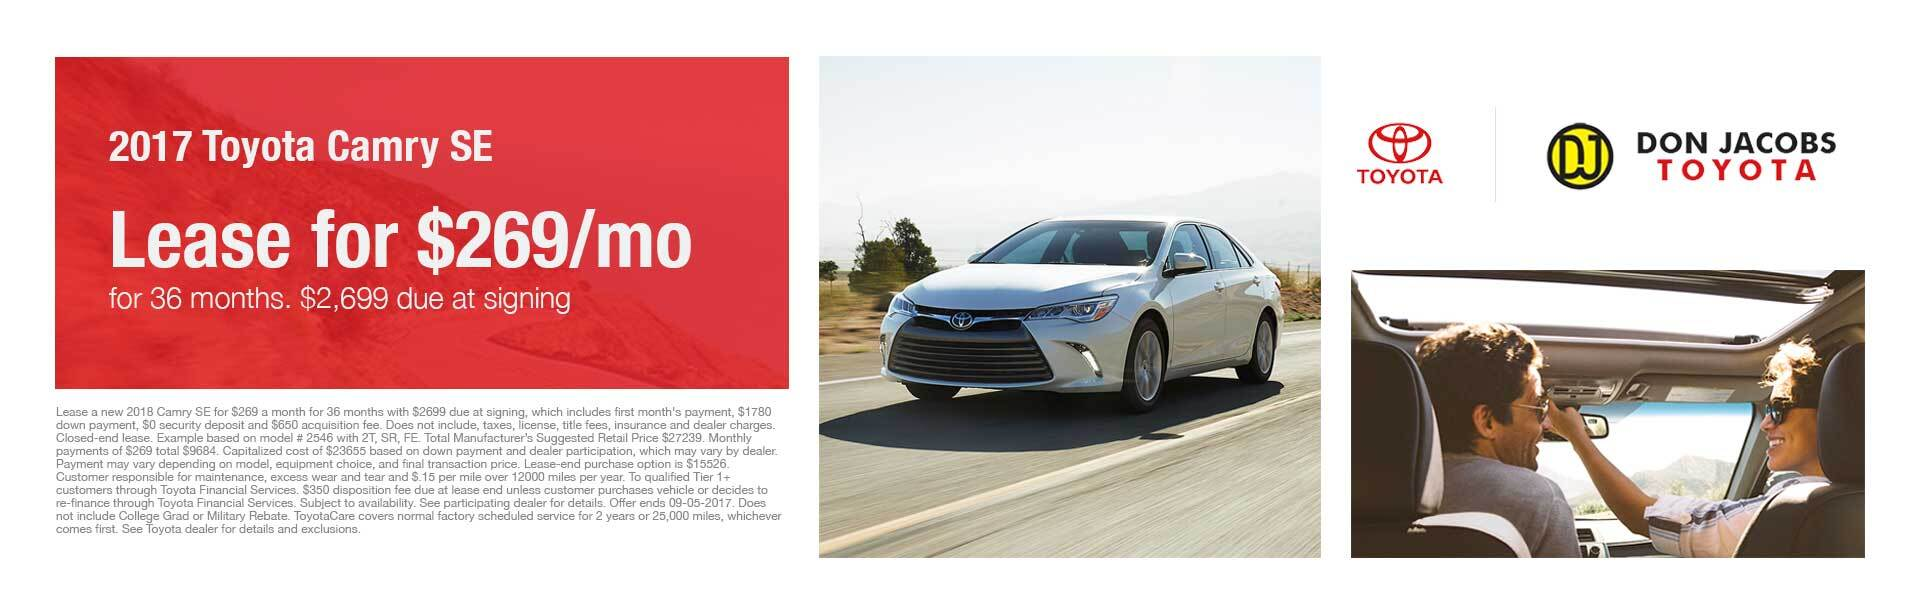 2017 Toyota Camry SE Don Jacobs Toyota